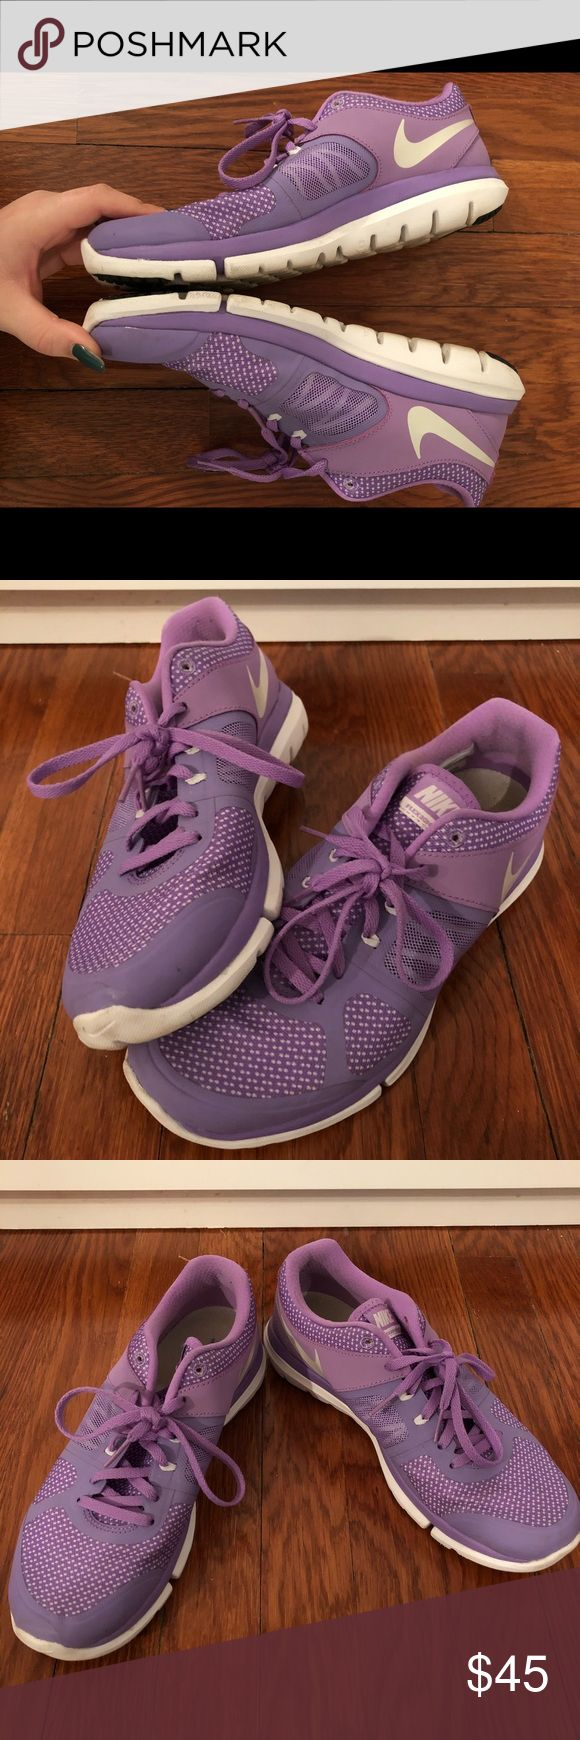 Nike Running Shoes Nike Flex 2014 Run (Don't let the year fool you; these are in AMAZING shape!)  -Purple -Size 8 -Comfortable  *OFFERS ARE WELCOMED* Nike Shoes Sneakers